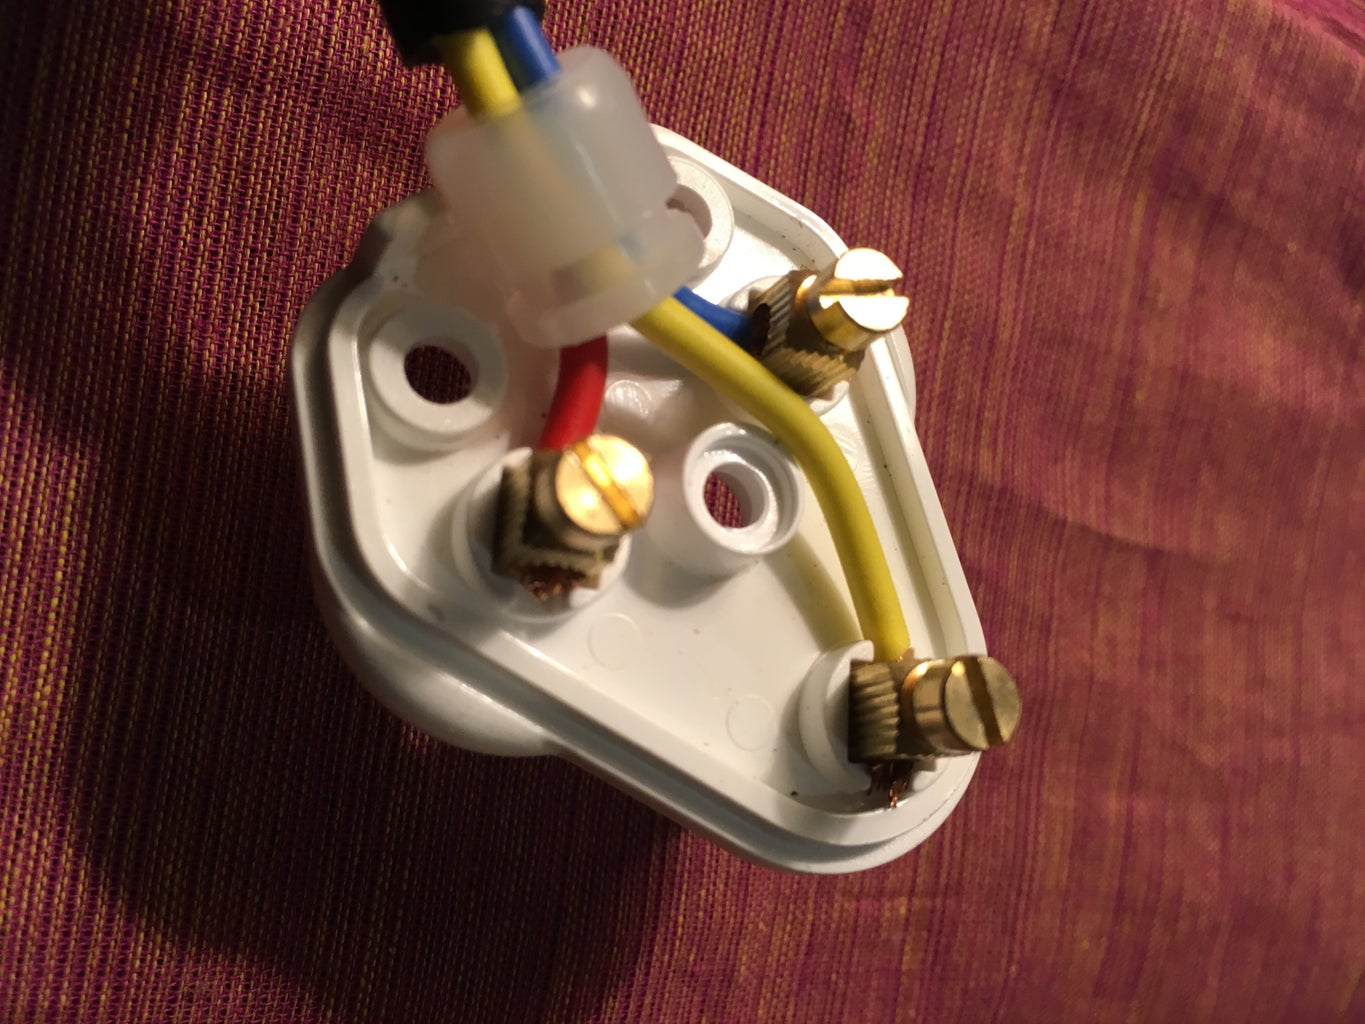 Wiring the Power Supply